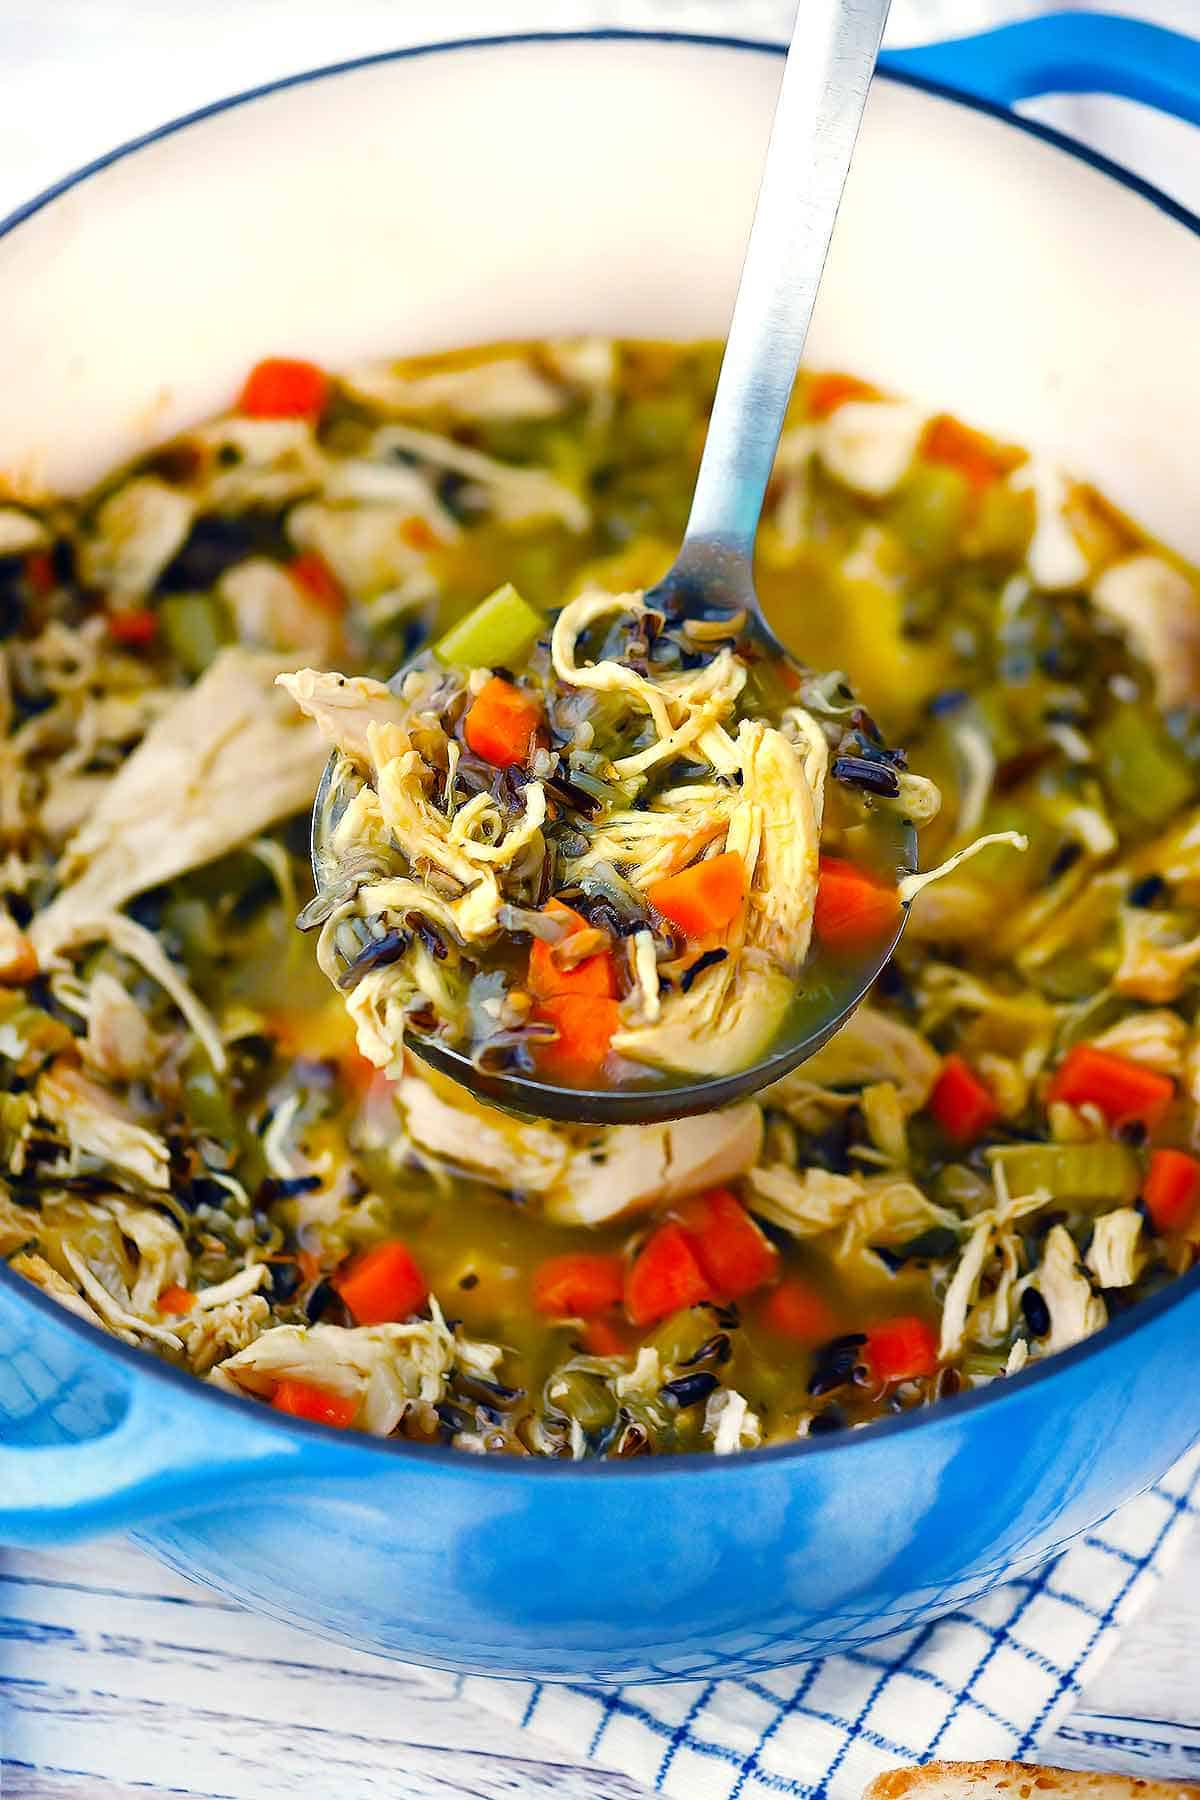 This chicken and wild rice soup is soul-satisfying and easy to make, with a nutty, earthy taste from the wild rice. Make on your stovetop or slow cooker, and freeze the extra for a rainy (or sick) day!